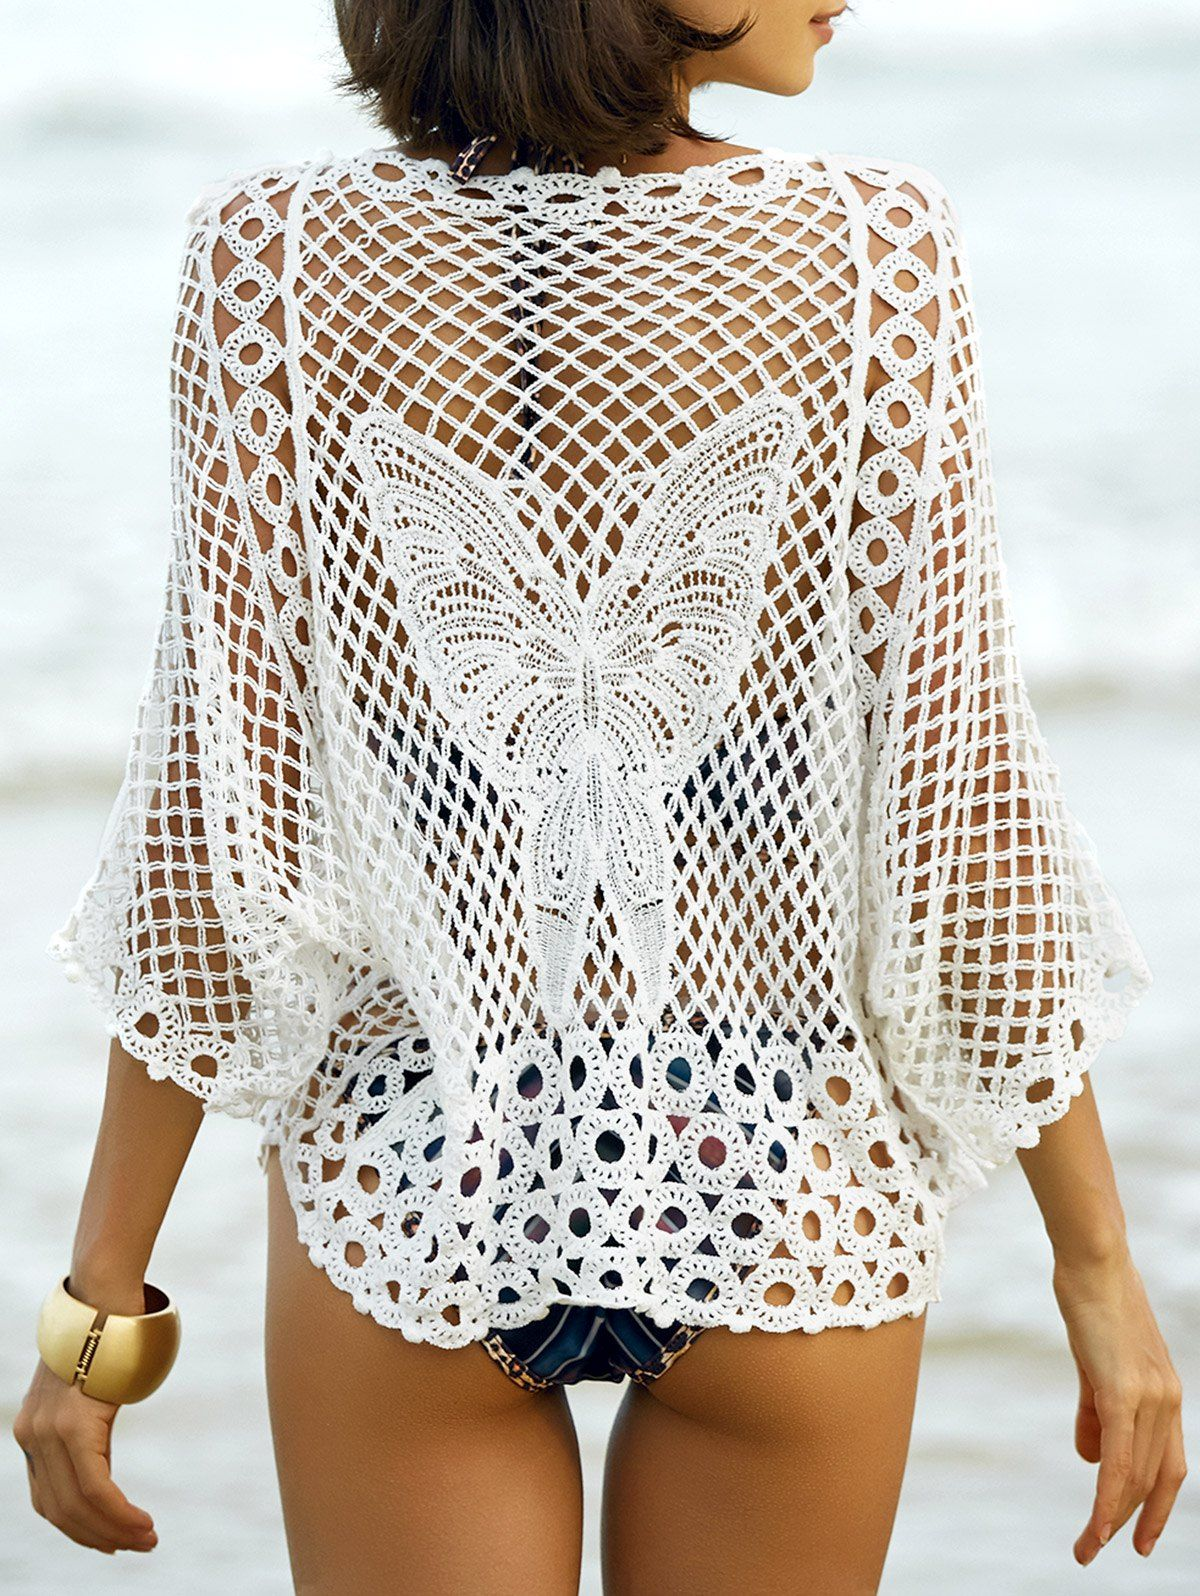 Hollow out butterfly pattern ladys cover up crochet butterfly crochet fashion hollow out white lace crochet butterfly pattern beach cover up bankloansurffo Images